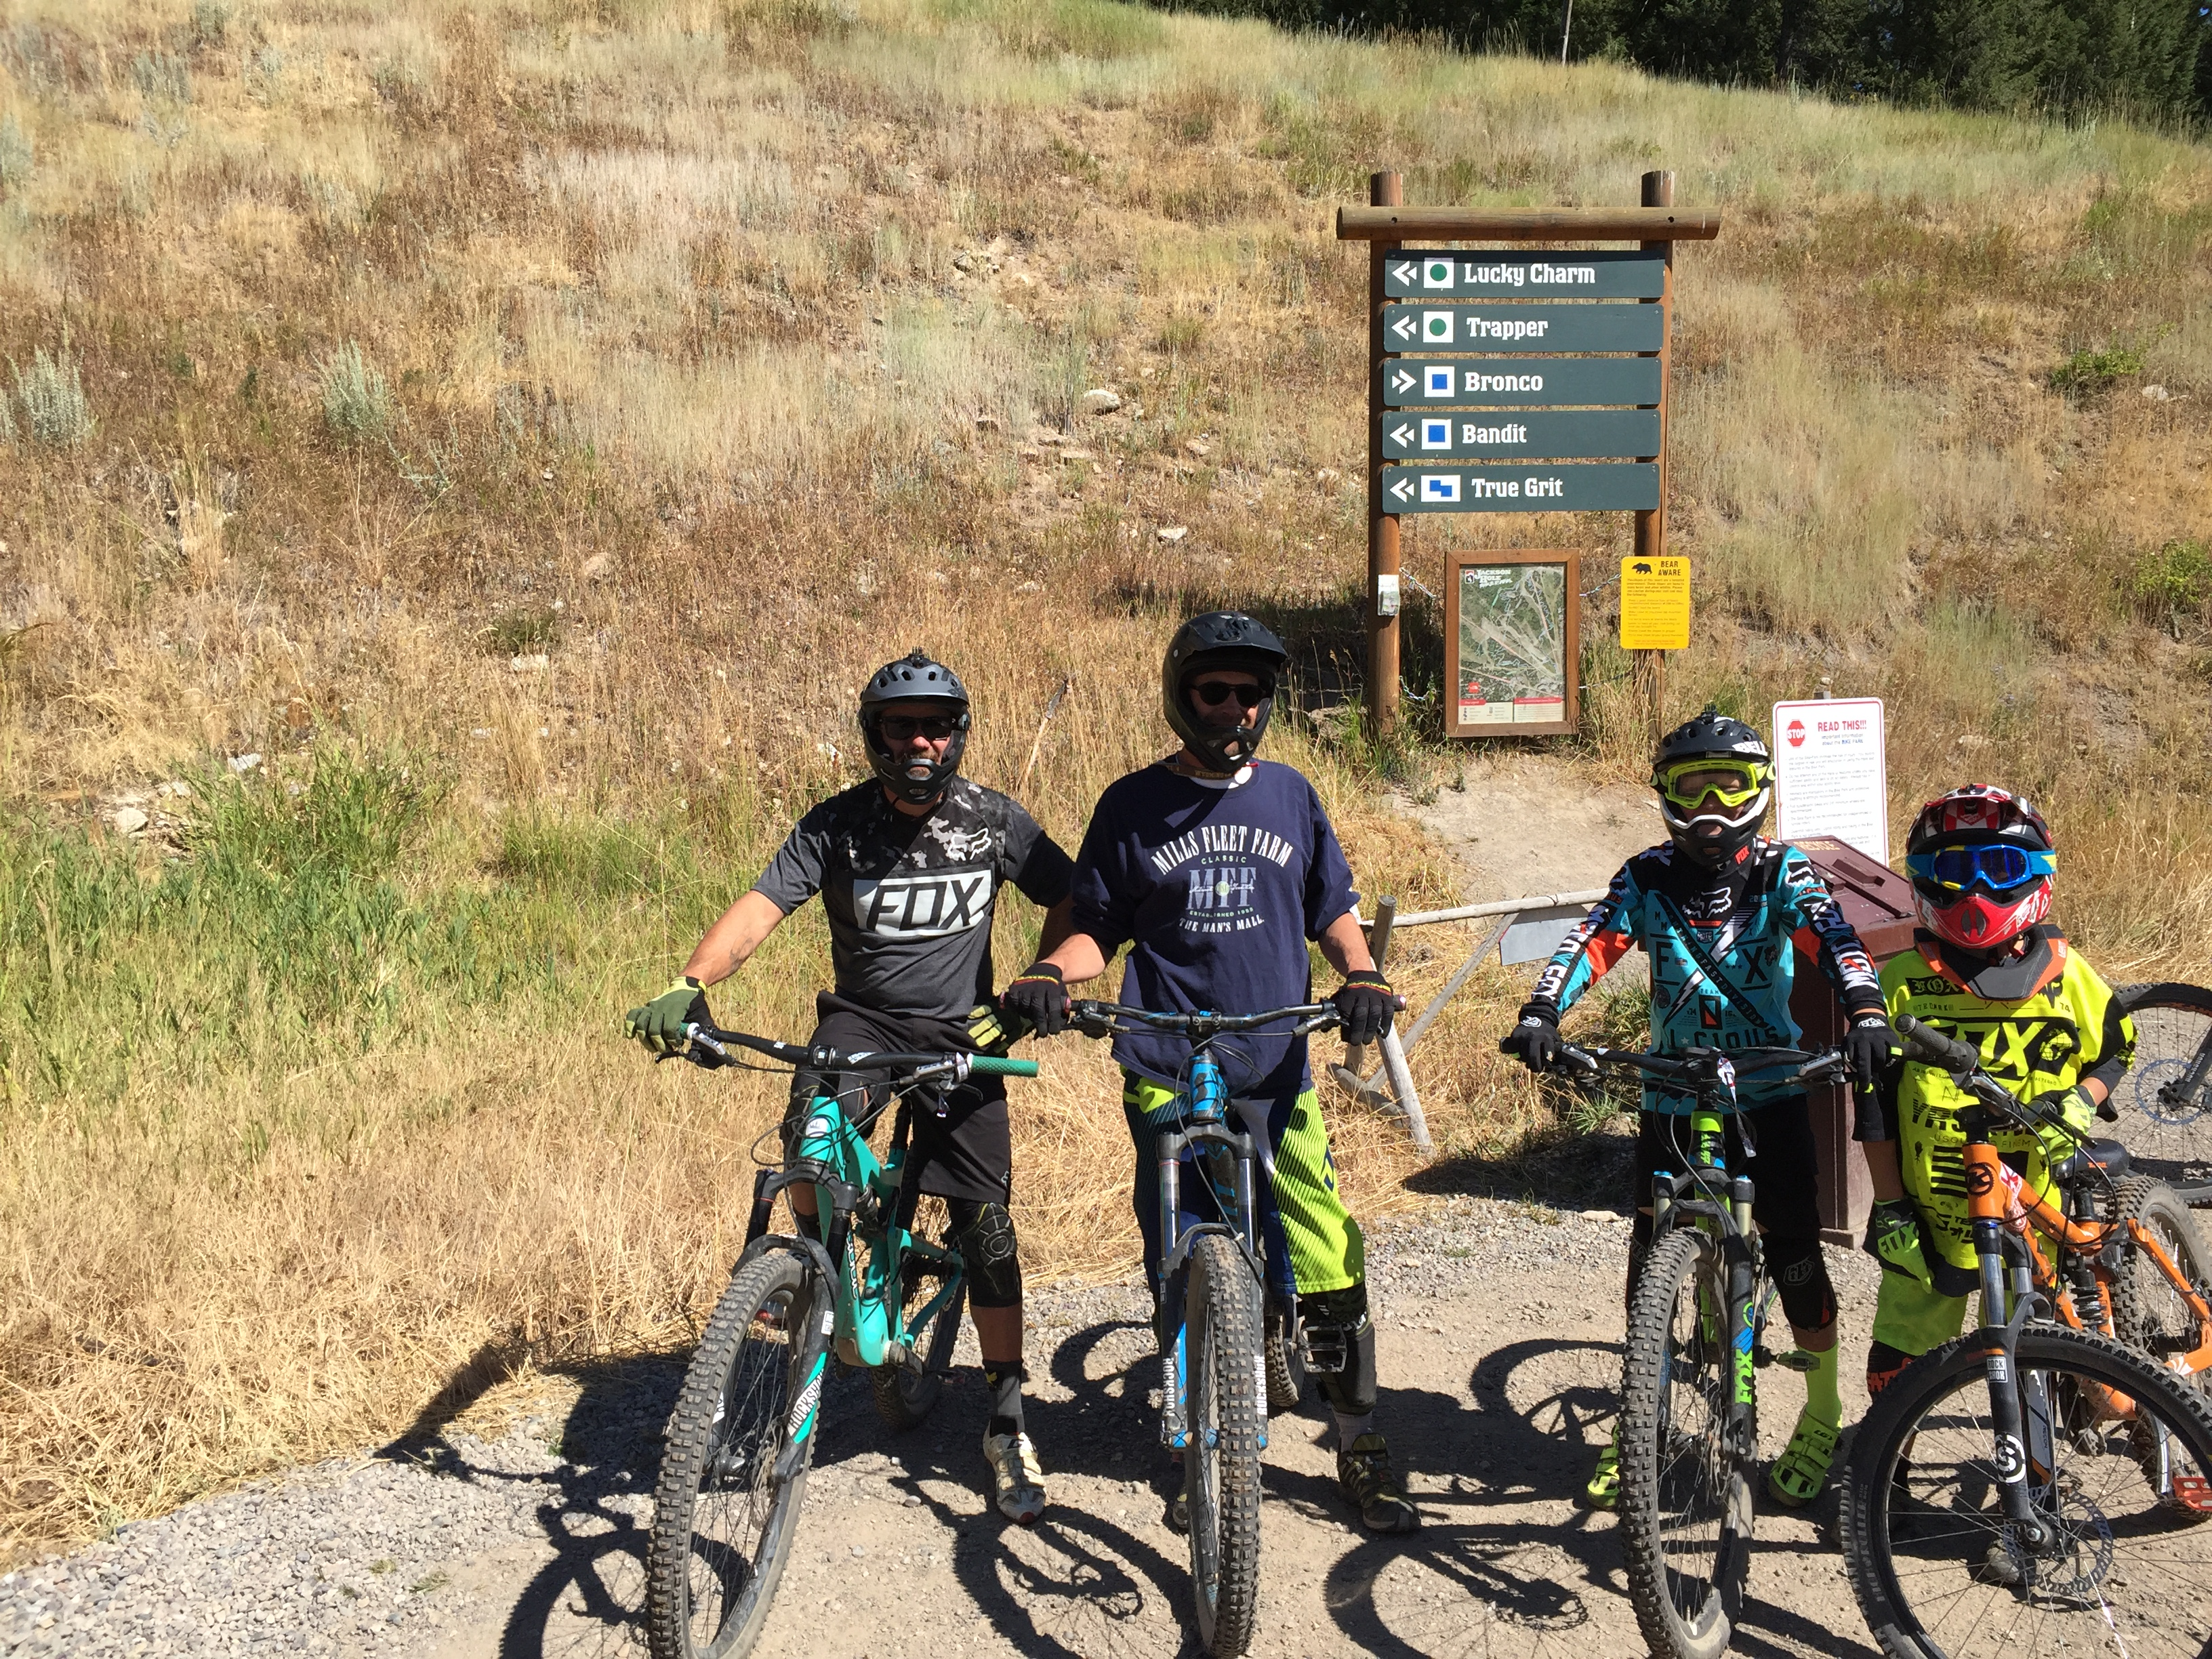 Randy, Brett, Kalden and Wolfi ready to drop in at Jackson Hole.